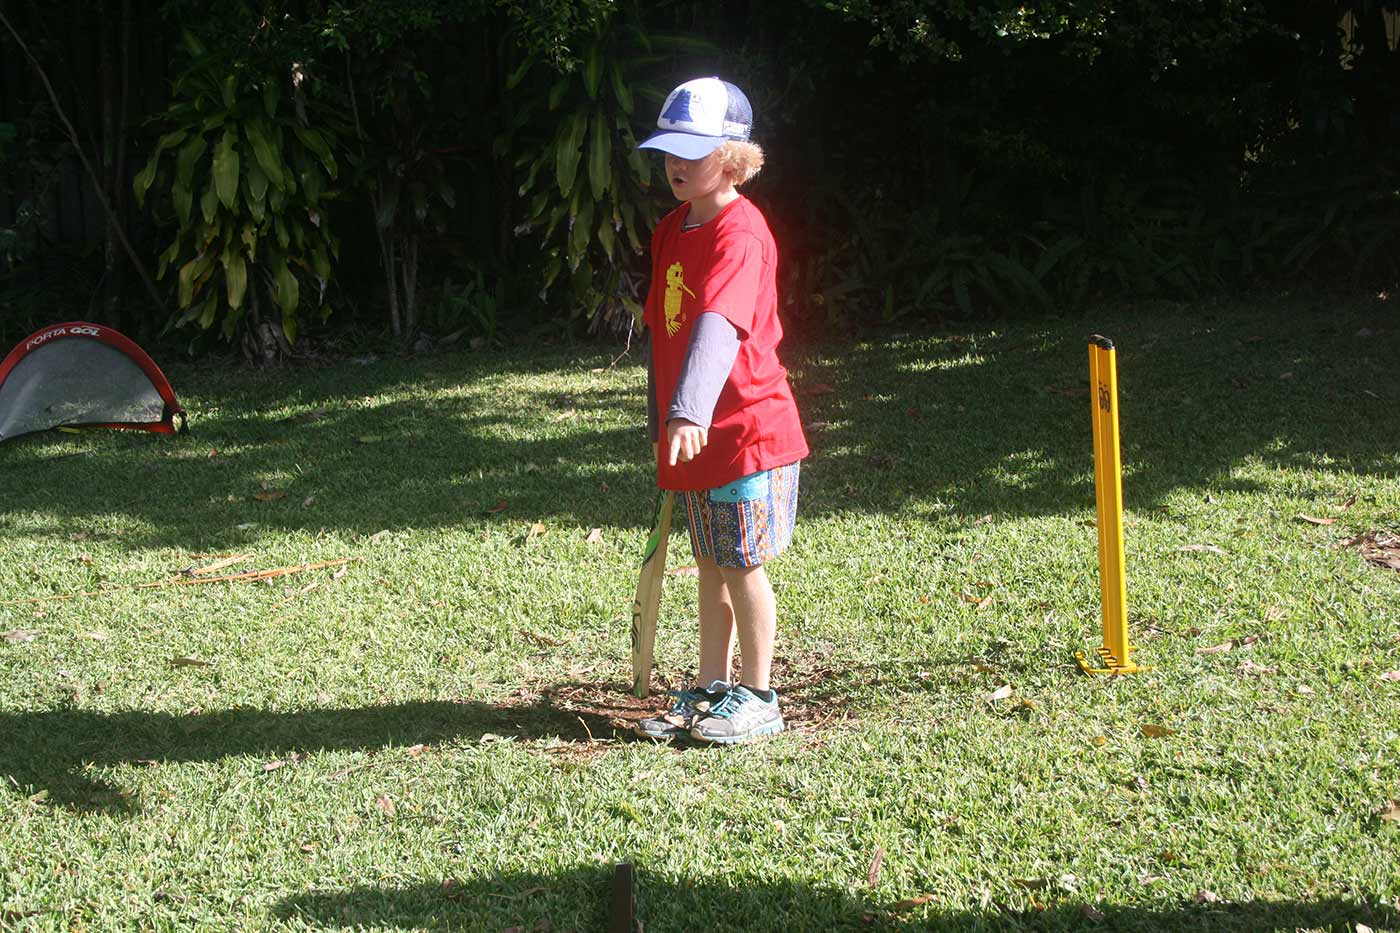 A boy stands at a backyard wicket